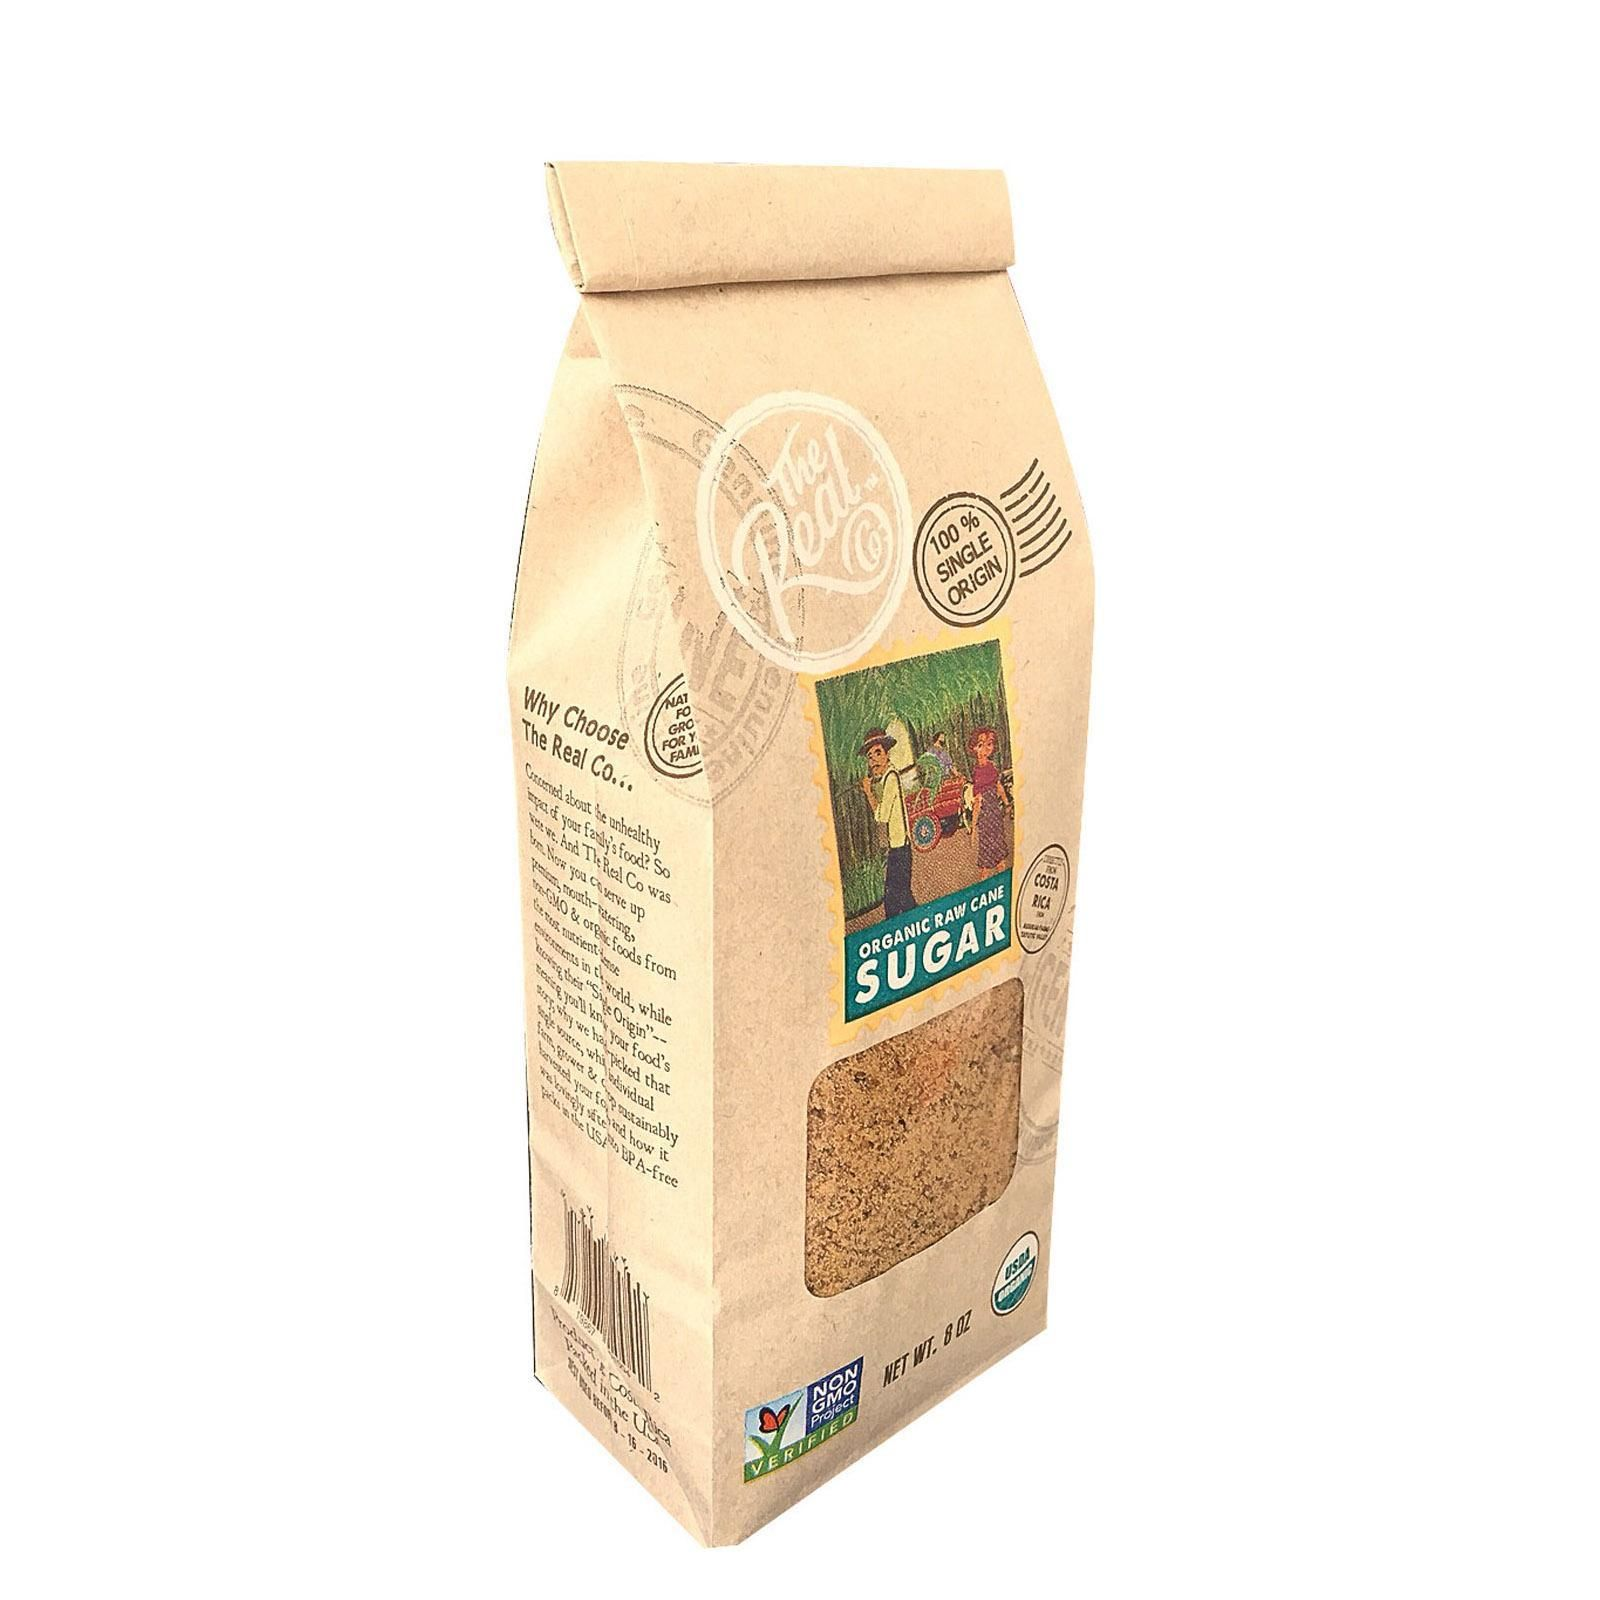 The Real Company Raw Cane Sugar Case Of 6 16 Oz All